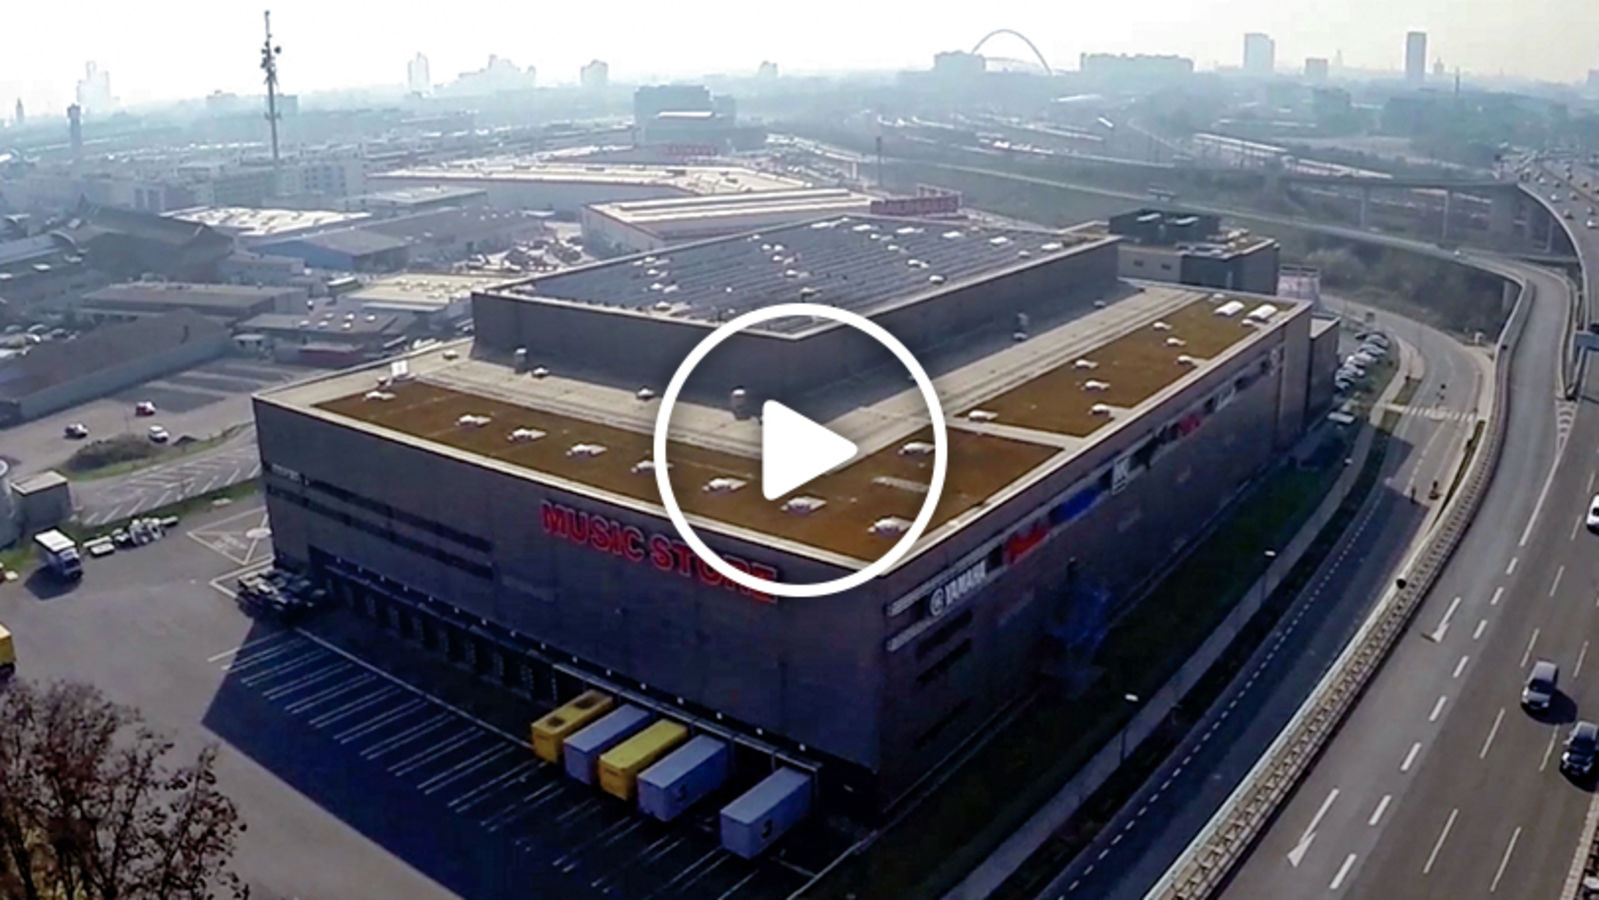 Video: Europe's largest music store